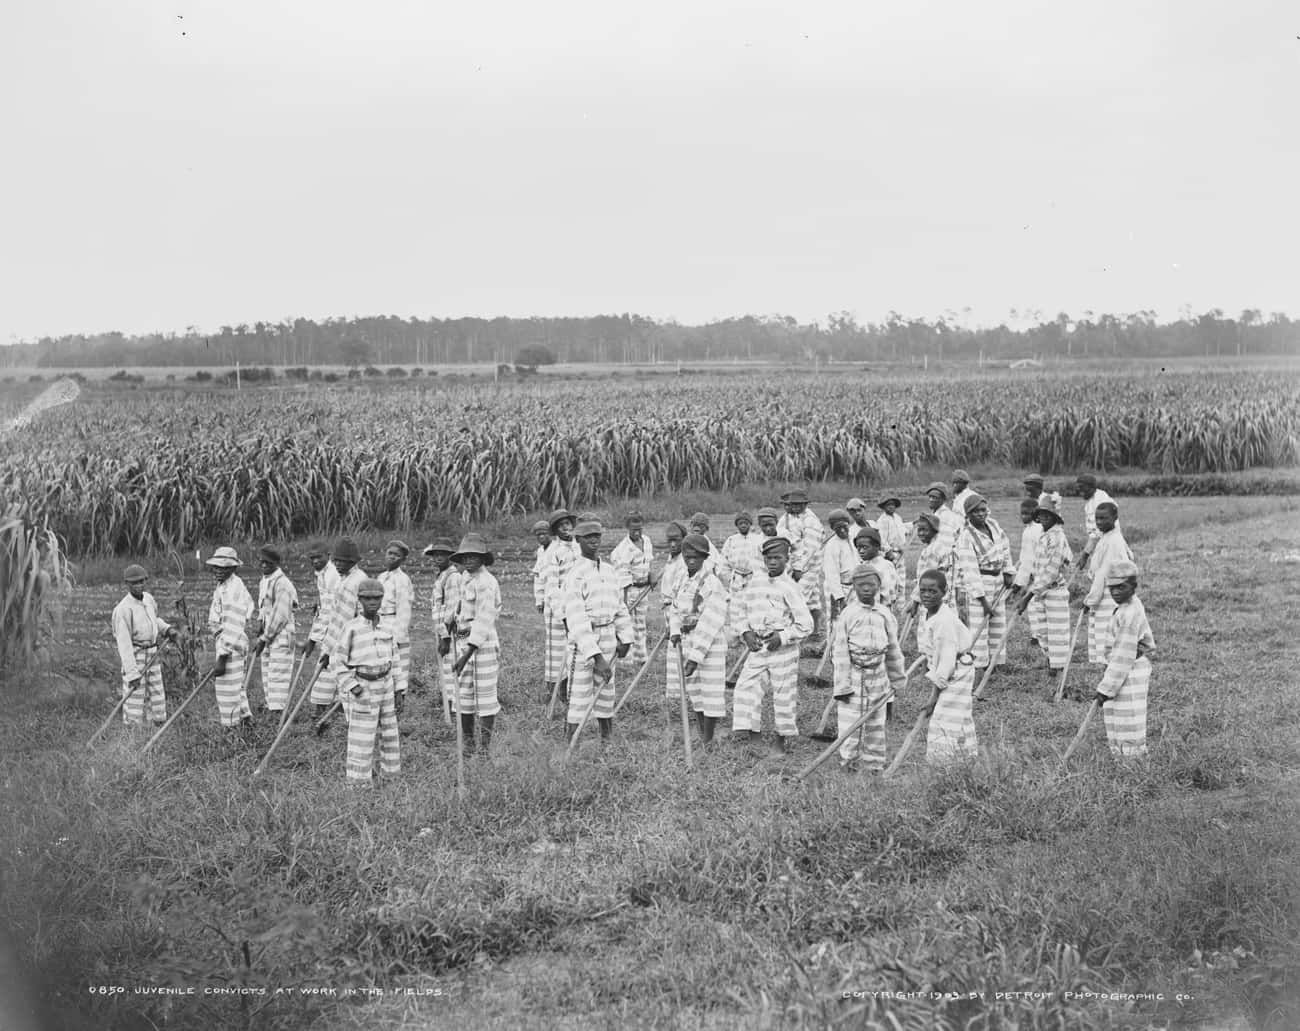 The Attire Was Intended To Be  is listed (or ranked) 4 on the list Chain Gangs Were The South's Answer To Freeing The Slaves